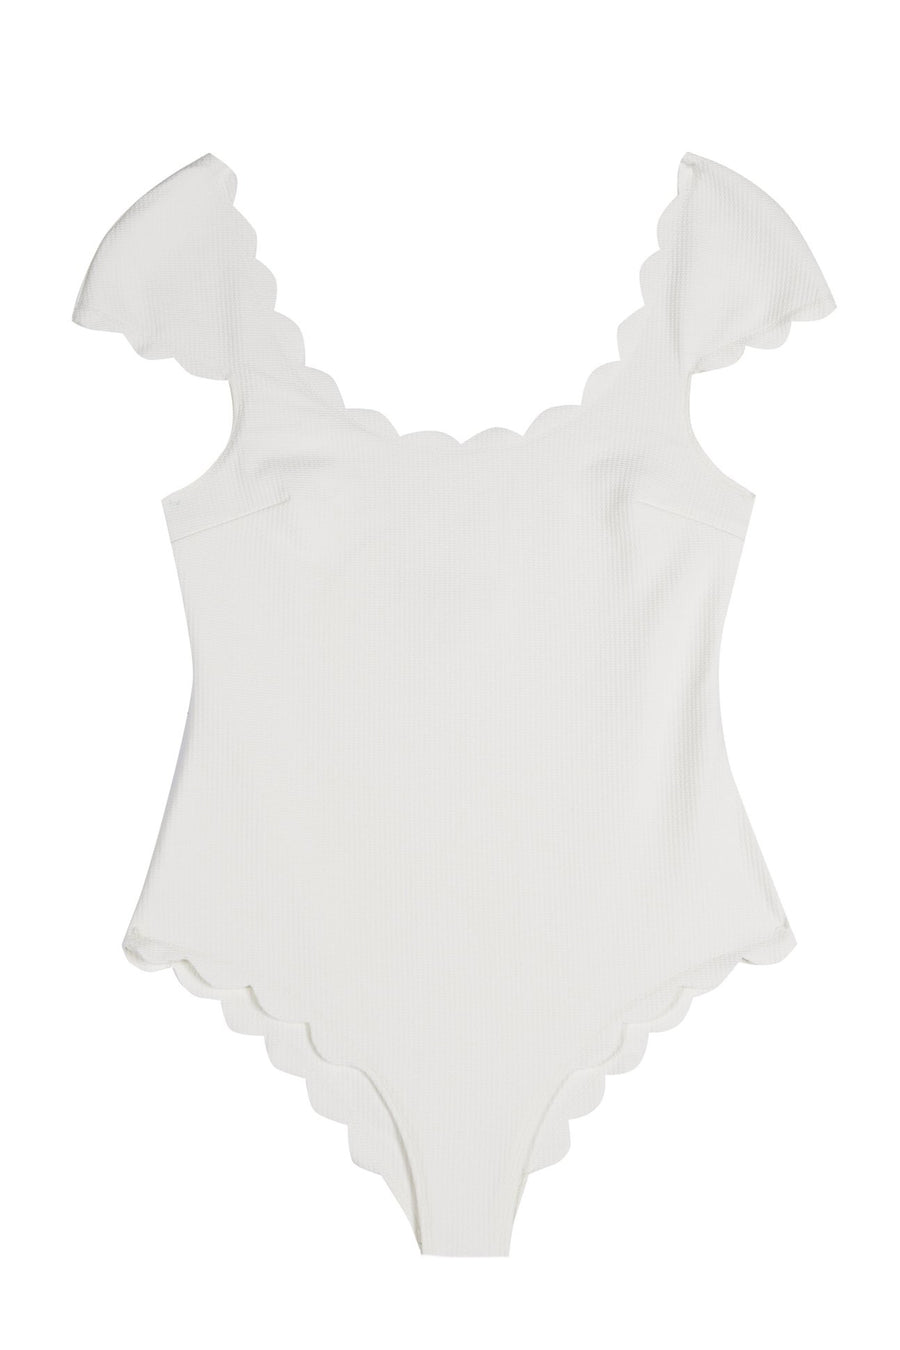 Mexico One Piece Maillot in Coconut